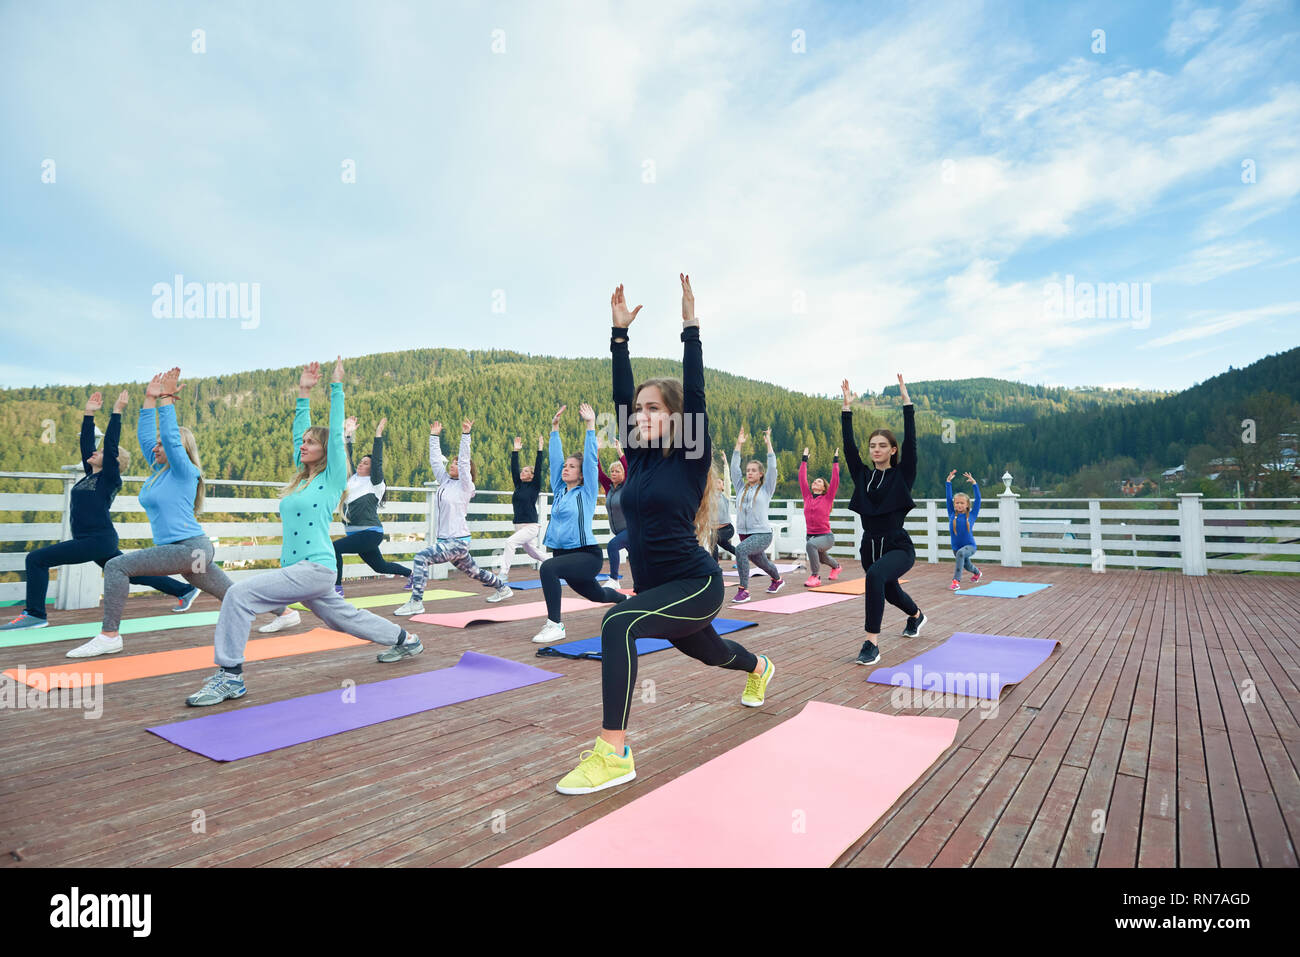 Women practicing low lung pose on yoga class. Group doing yoga exercises with coach on fresh air in mountains. People in sportswear stretching on special yoga mats. - Stock Image